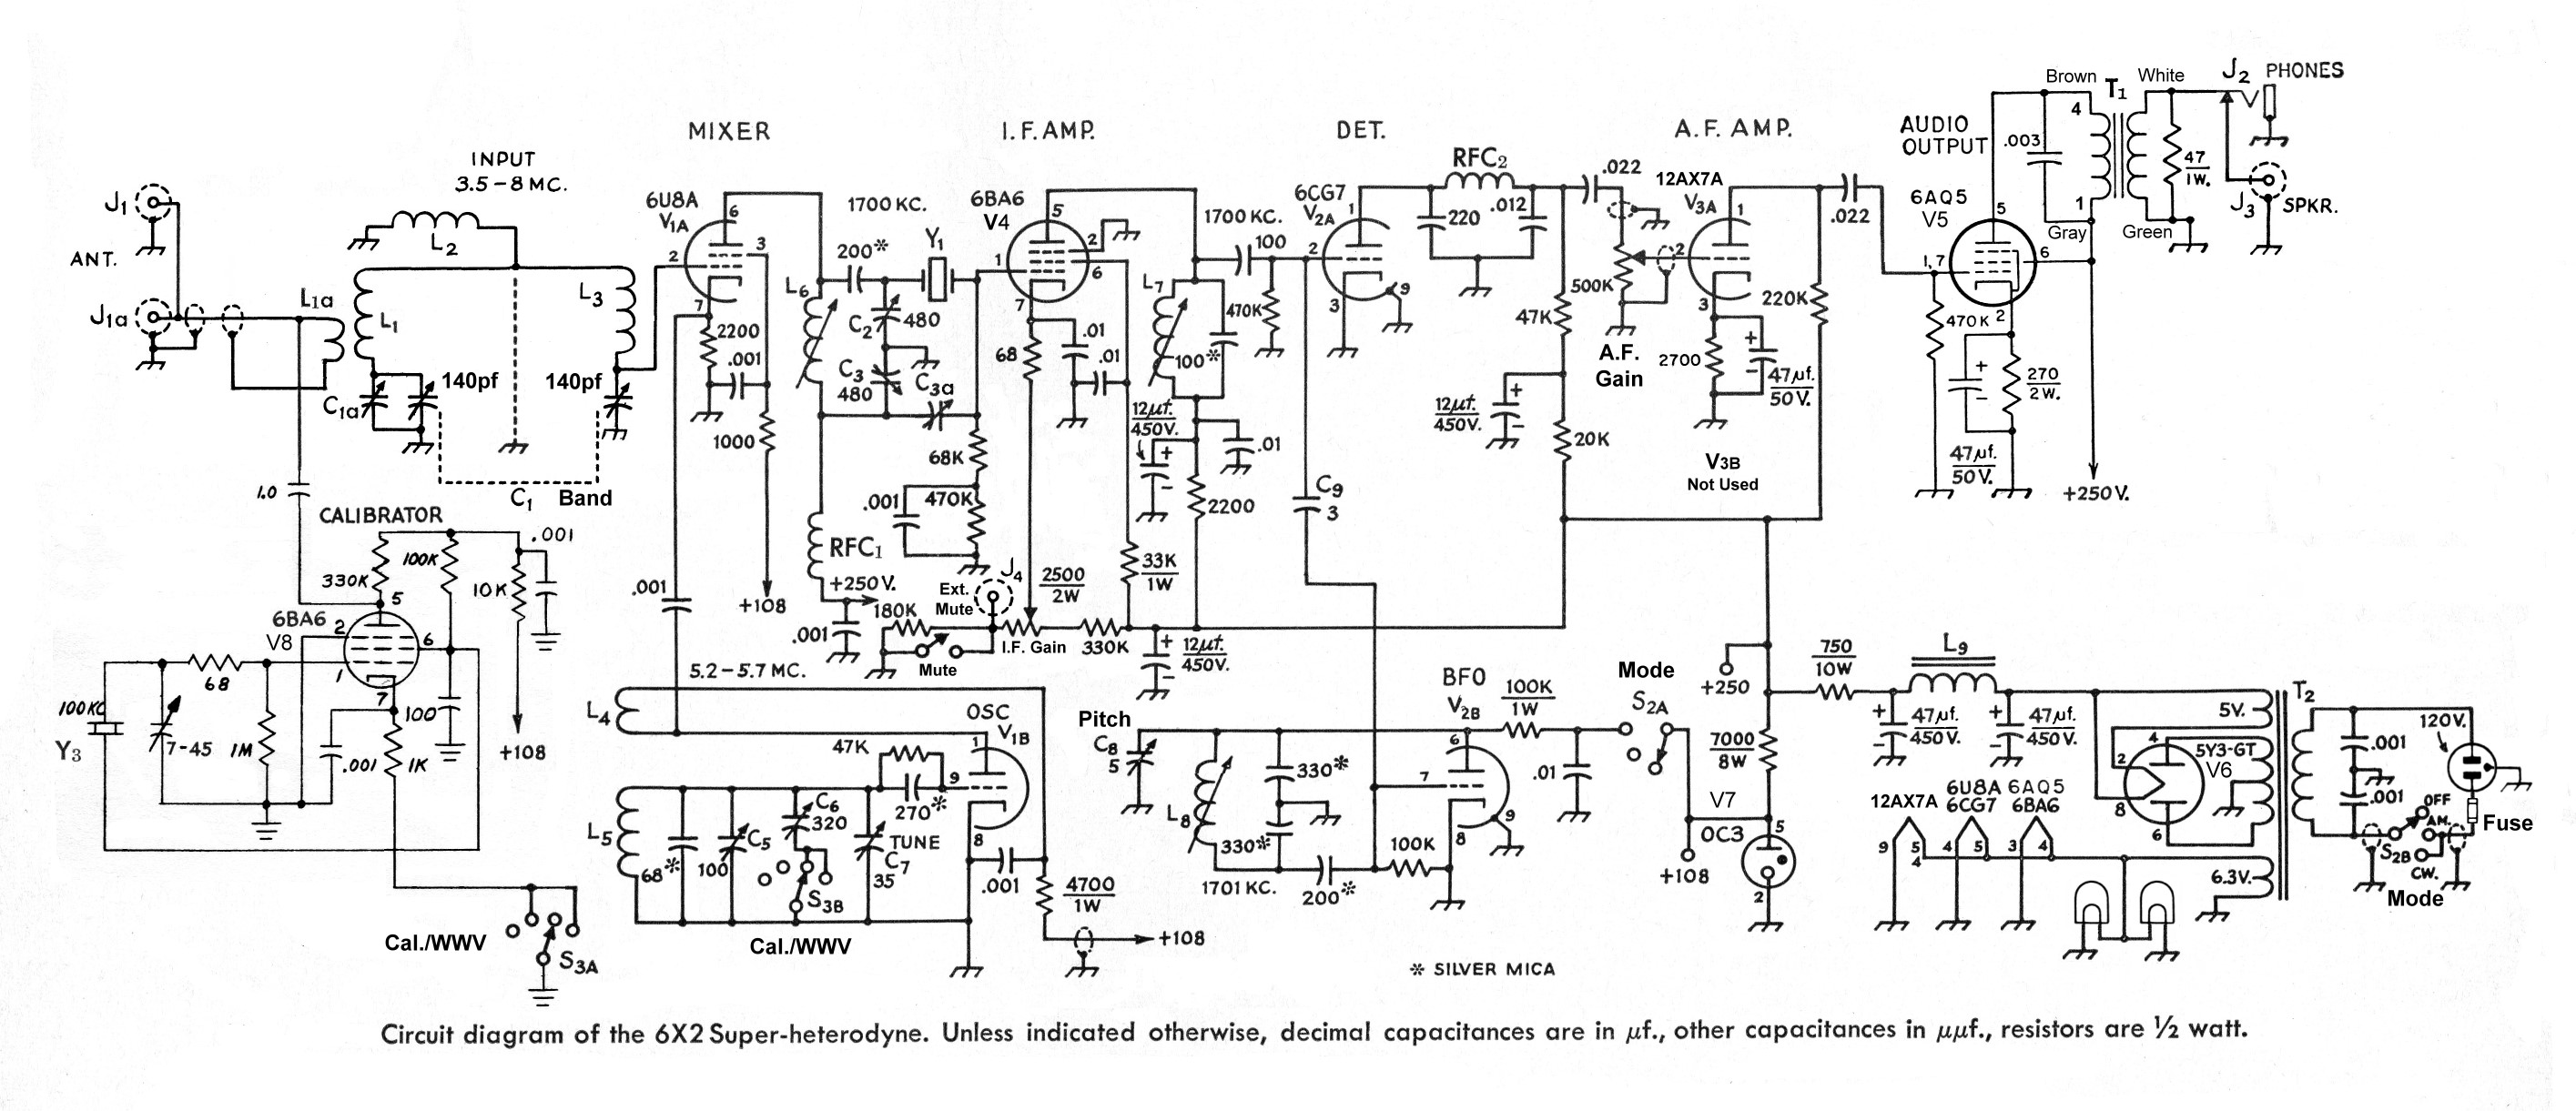 The Aa8v 6x2 Superheterodyne Receiver